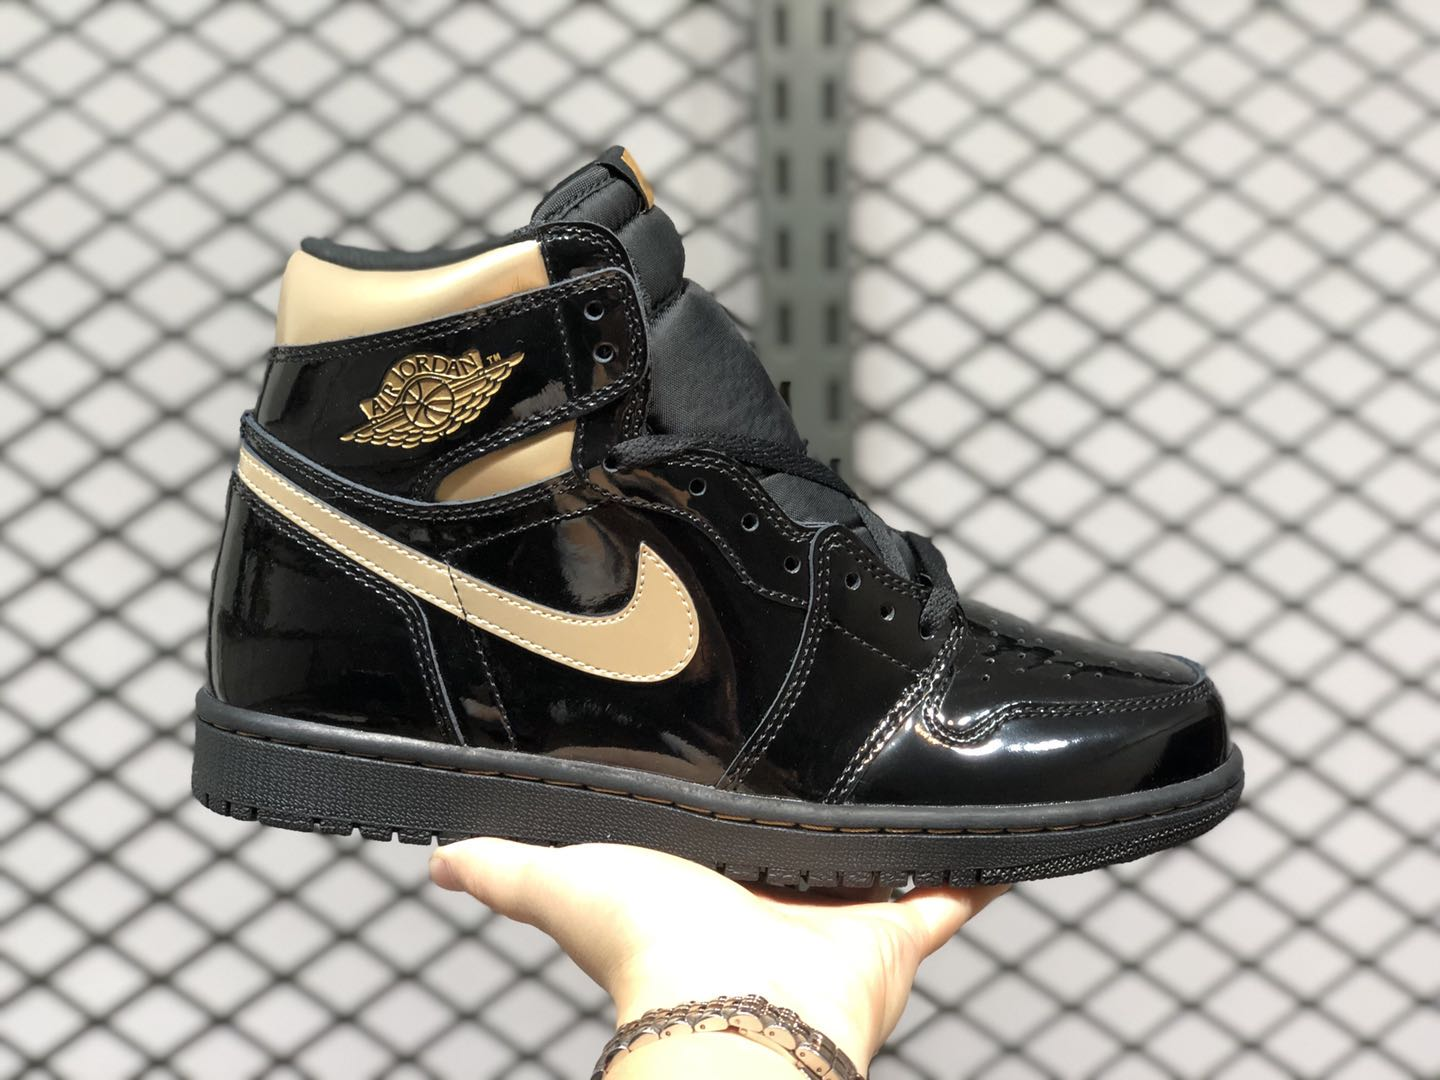 New Release Air Jordan 1 High OG Black-Metallic Gold 555088-032